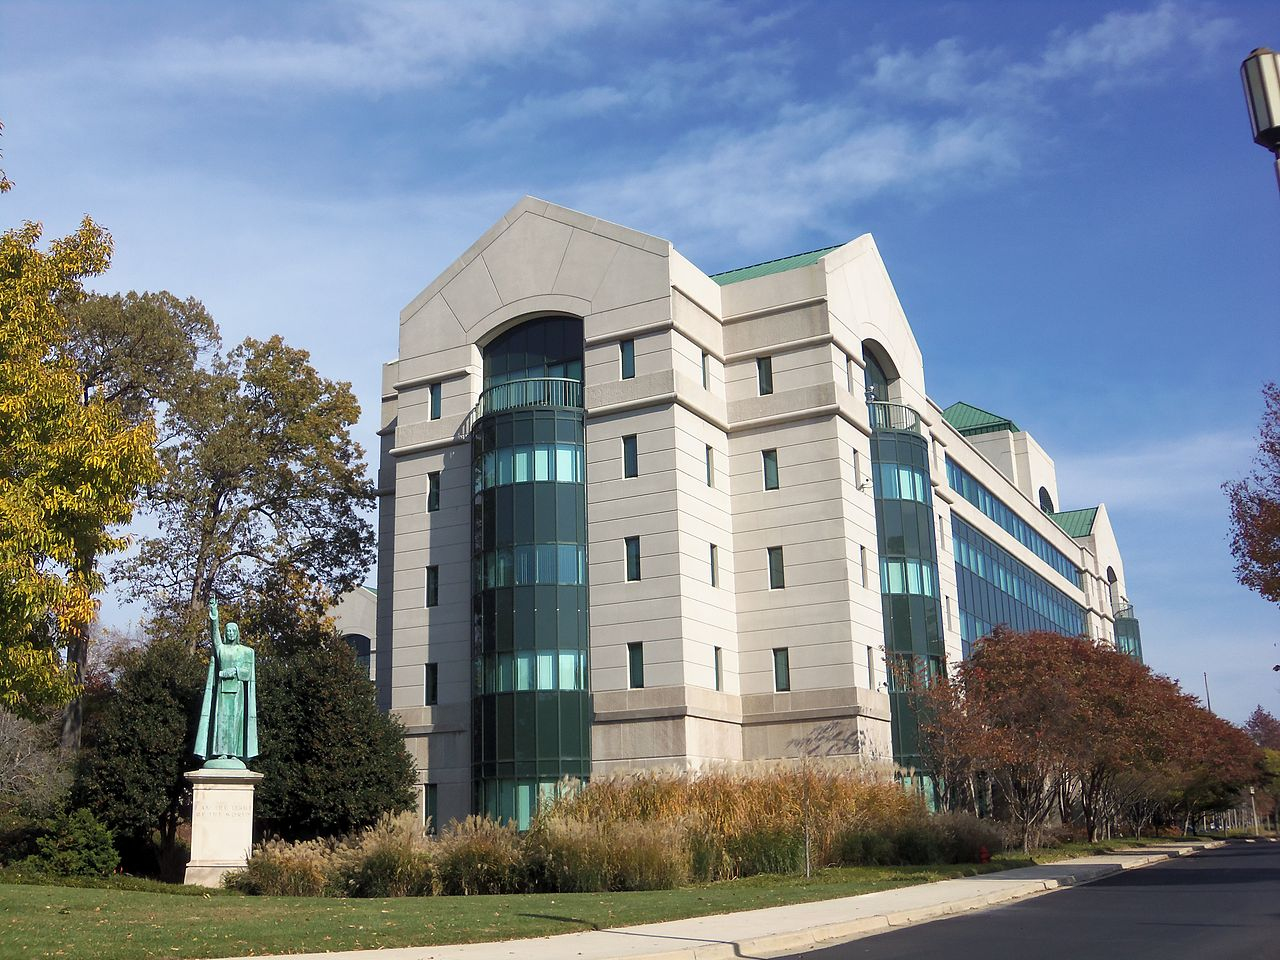 Offices of the United States Conference of Catholic Bishops on Fourth Street NE in Washington